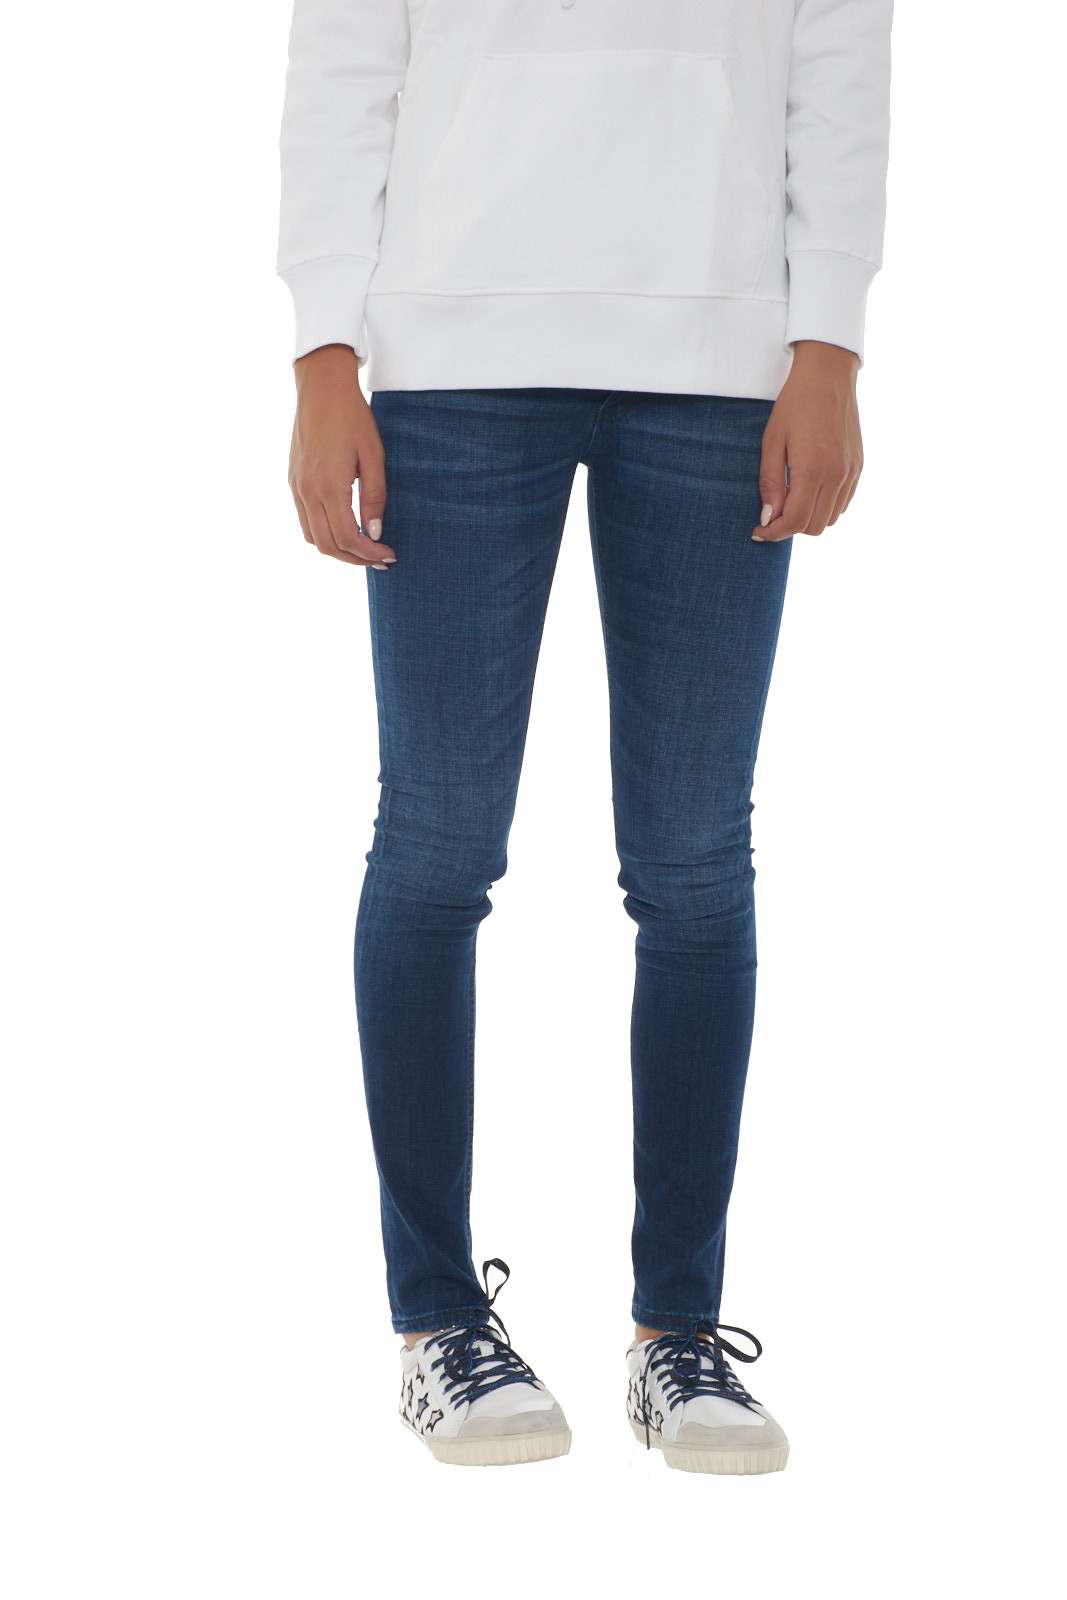 https://www.parmax.com/media/catalog/product/a/i/AI-outlet_parmax-denim-donna-Dondup-DP450%20DS0265D-A.jpg